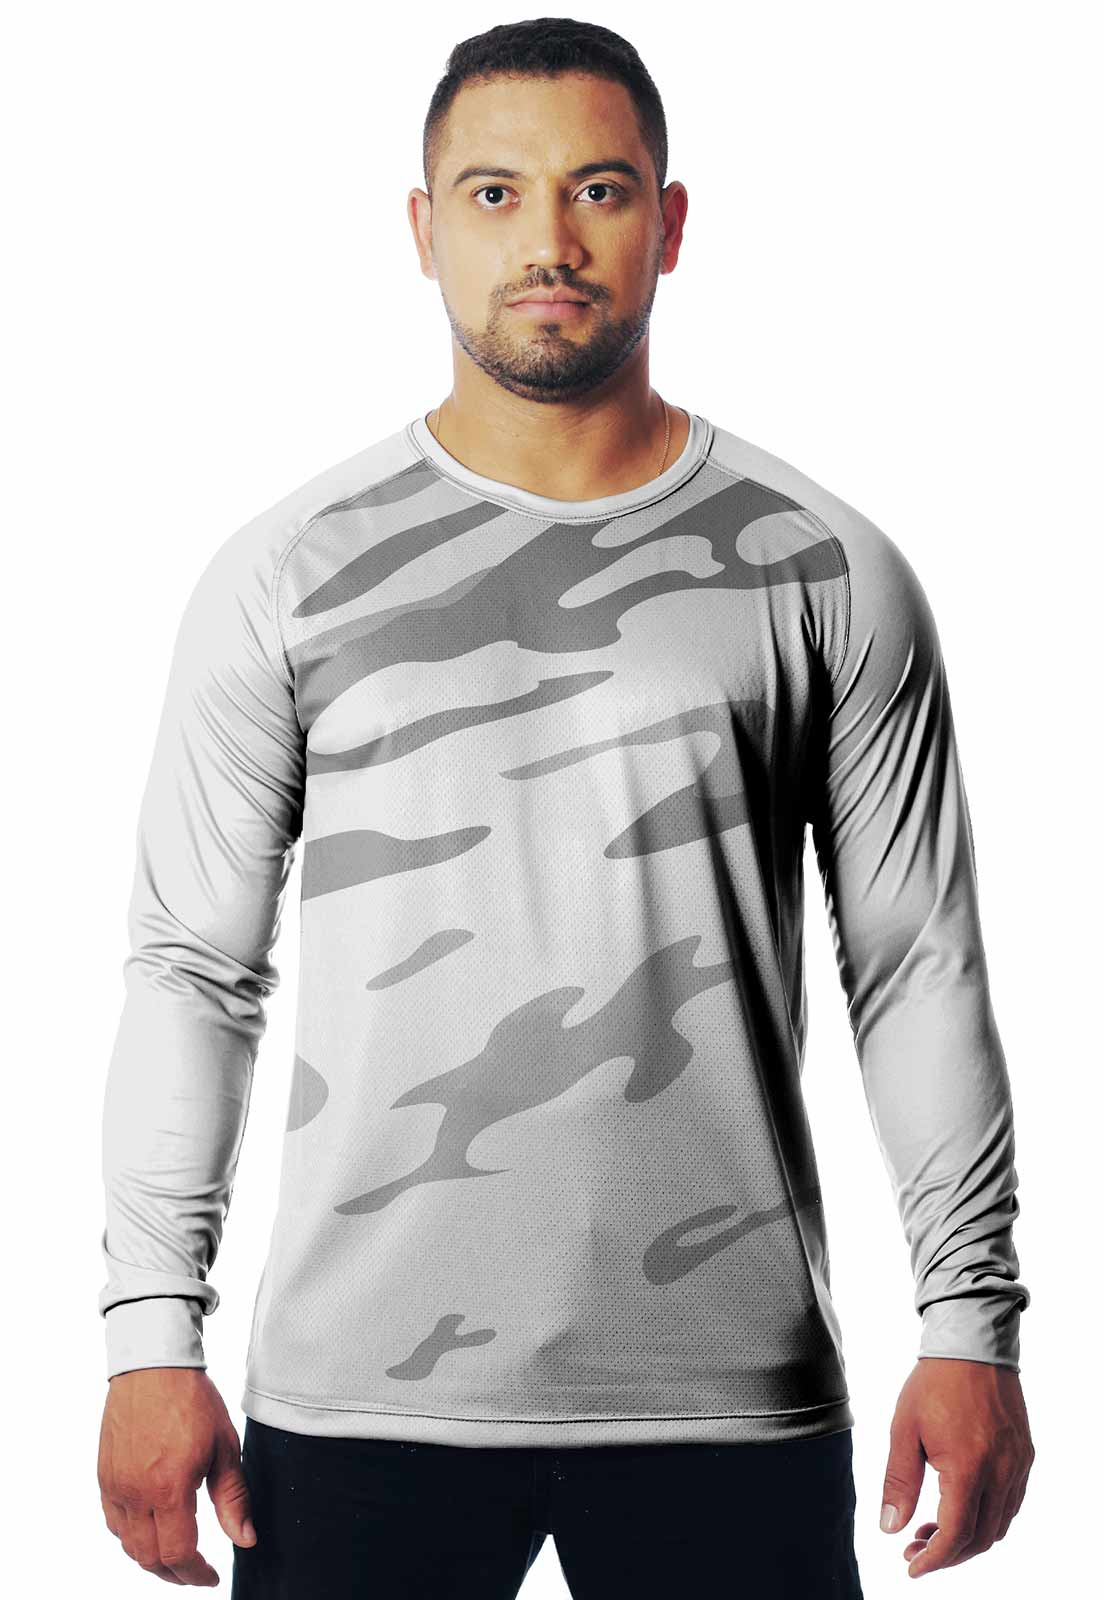 CAMISETA CAMUFLADA LAZER 10 MANGA LONGA MASCULINA  - REAL HUNTER OUTDOORS